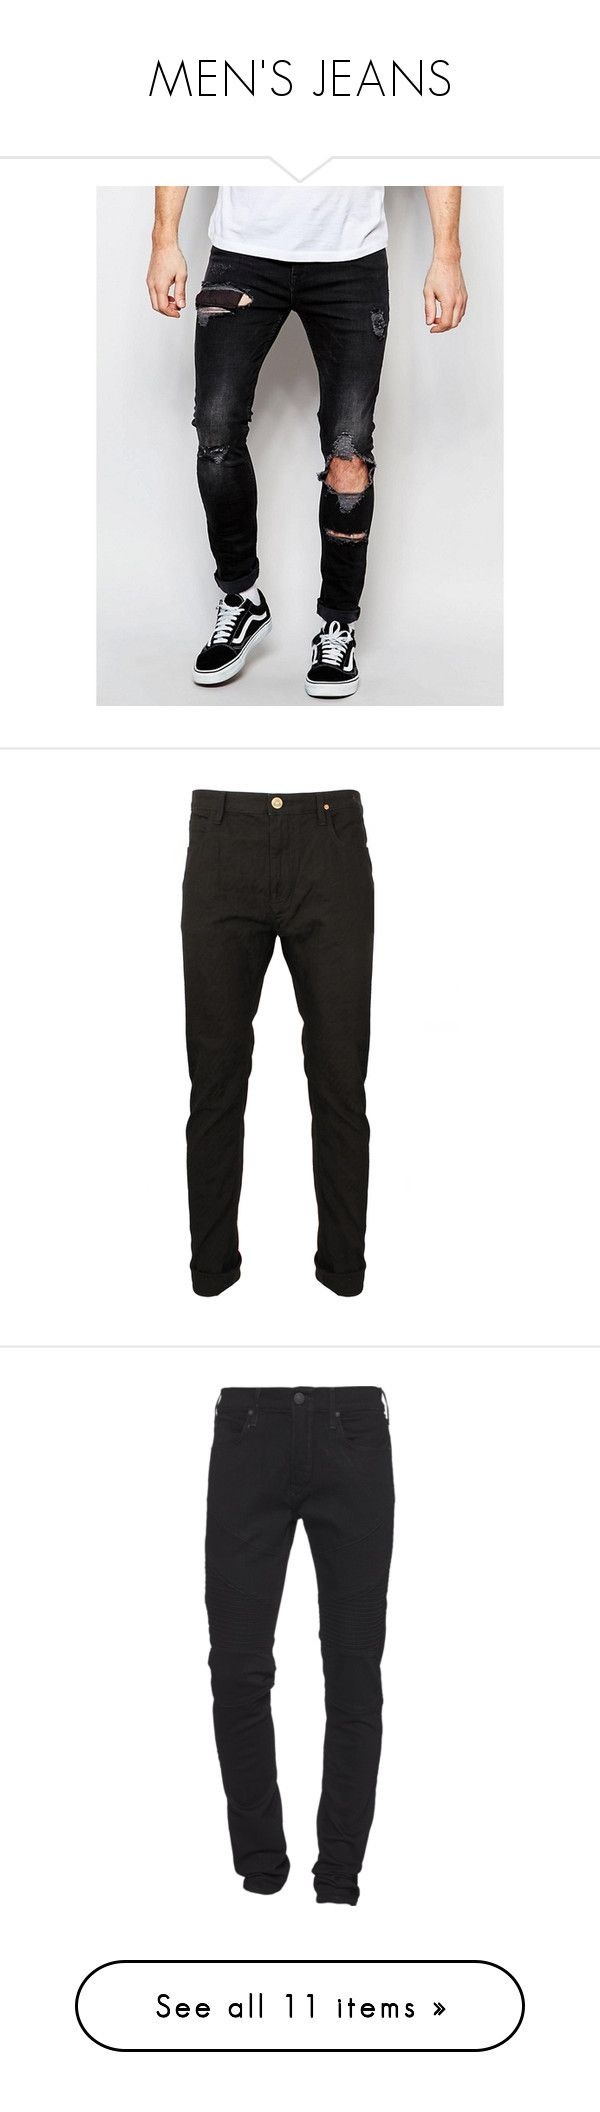 """""""MEN'S JEANS"""" by wa-sa-bae ❤ liked on Polyvore featuring men's fashion, men's clothing, men's jeans, mens super skinny jeans, mens tall jeans, mens destroyed jeans, mens zipper jeans, mens torn jeans, guy's and male clothes"""